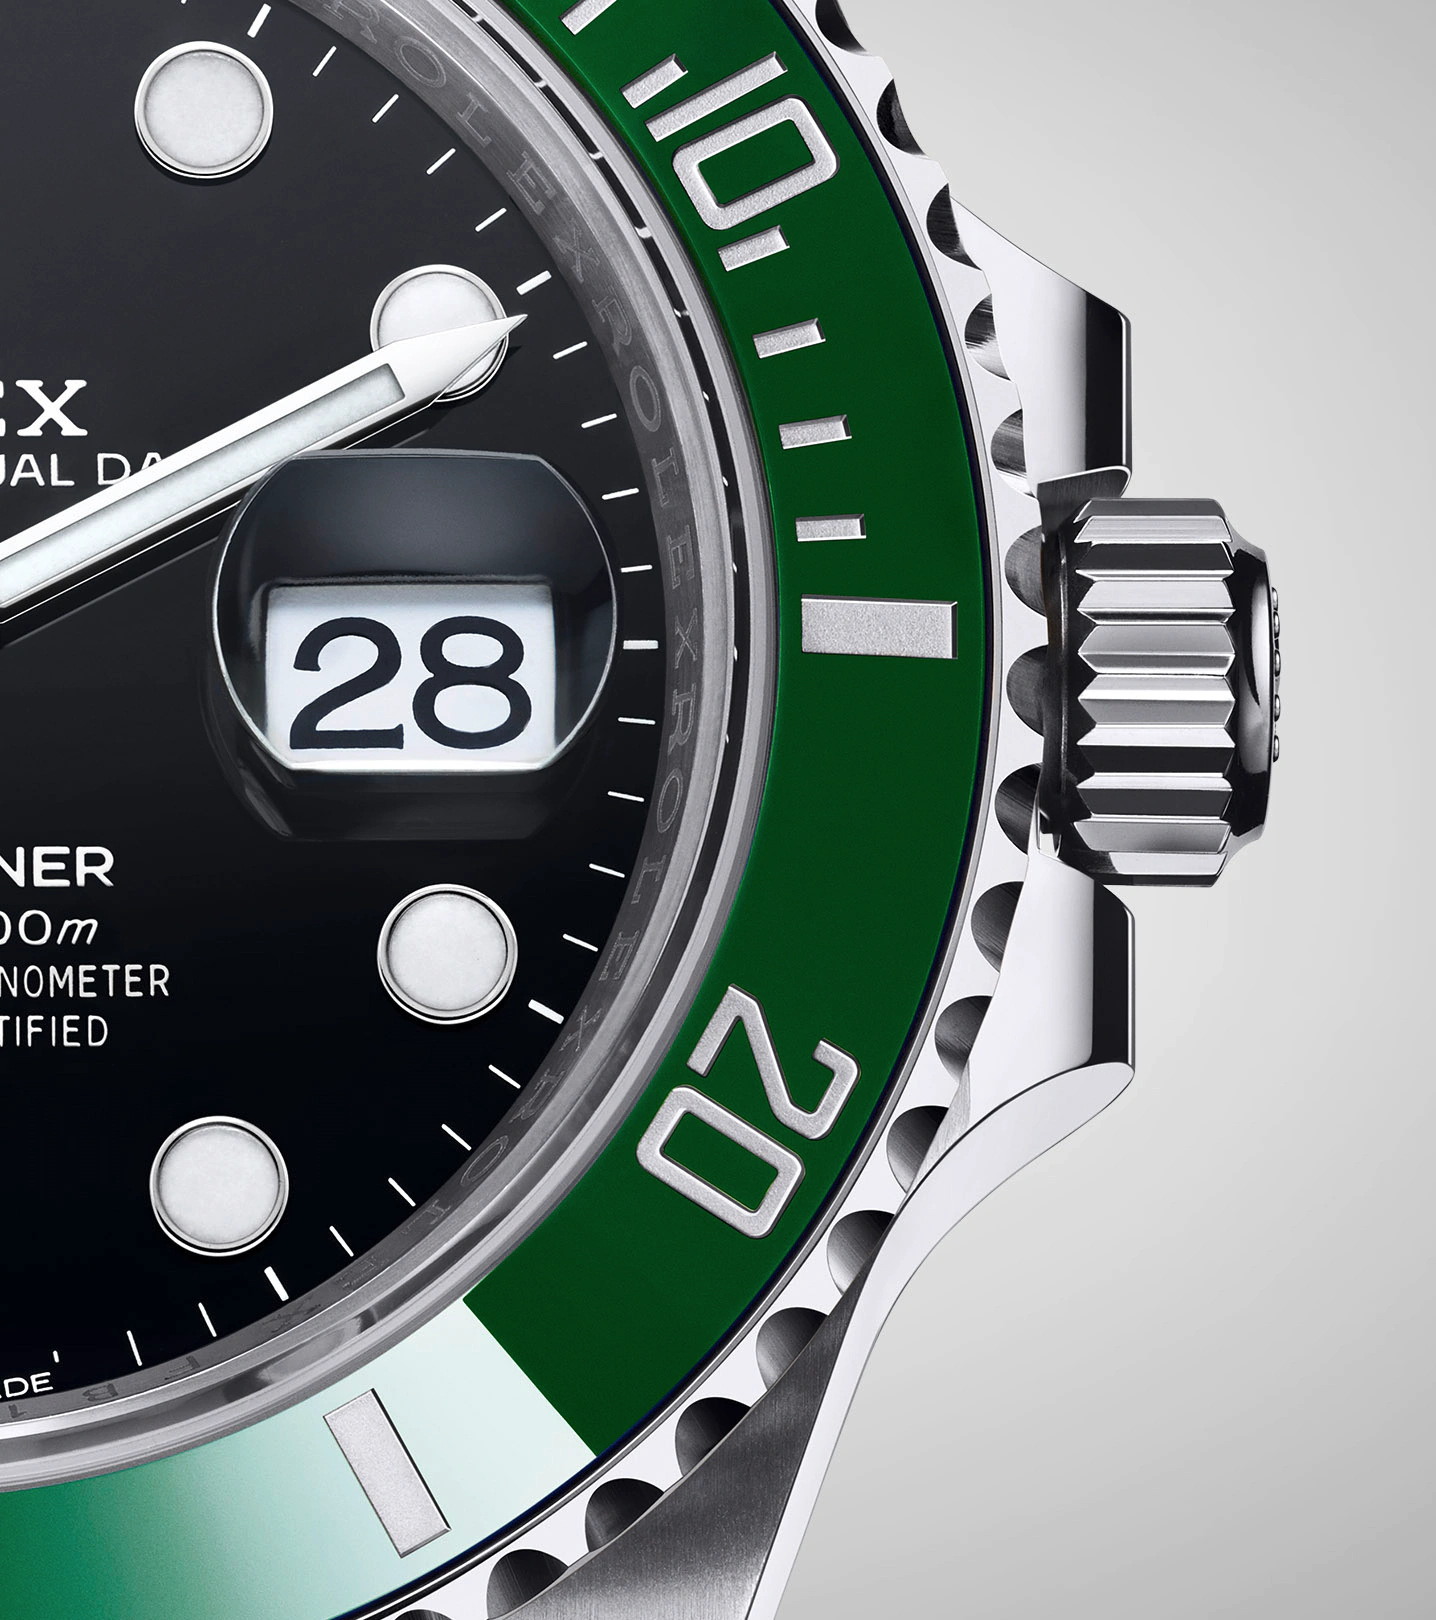 the new Rolex® Submariner with green Cerachrom bezel and black dial